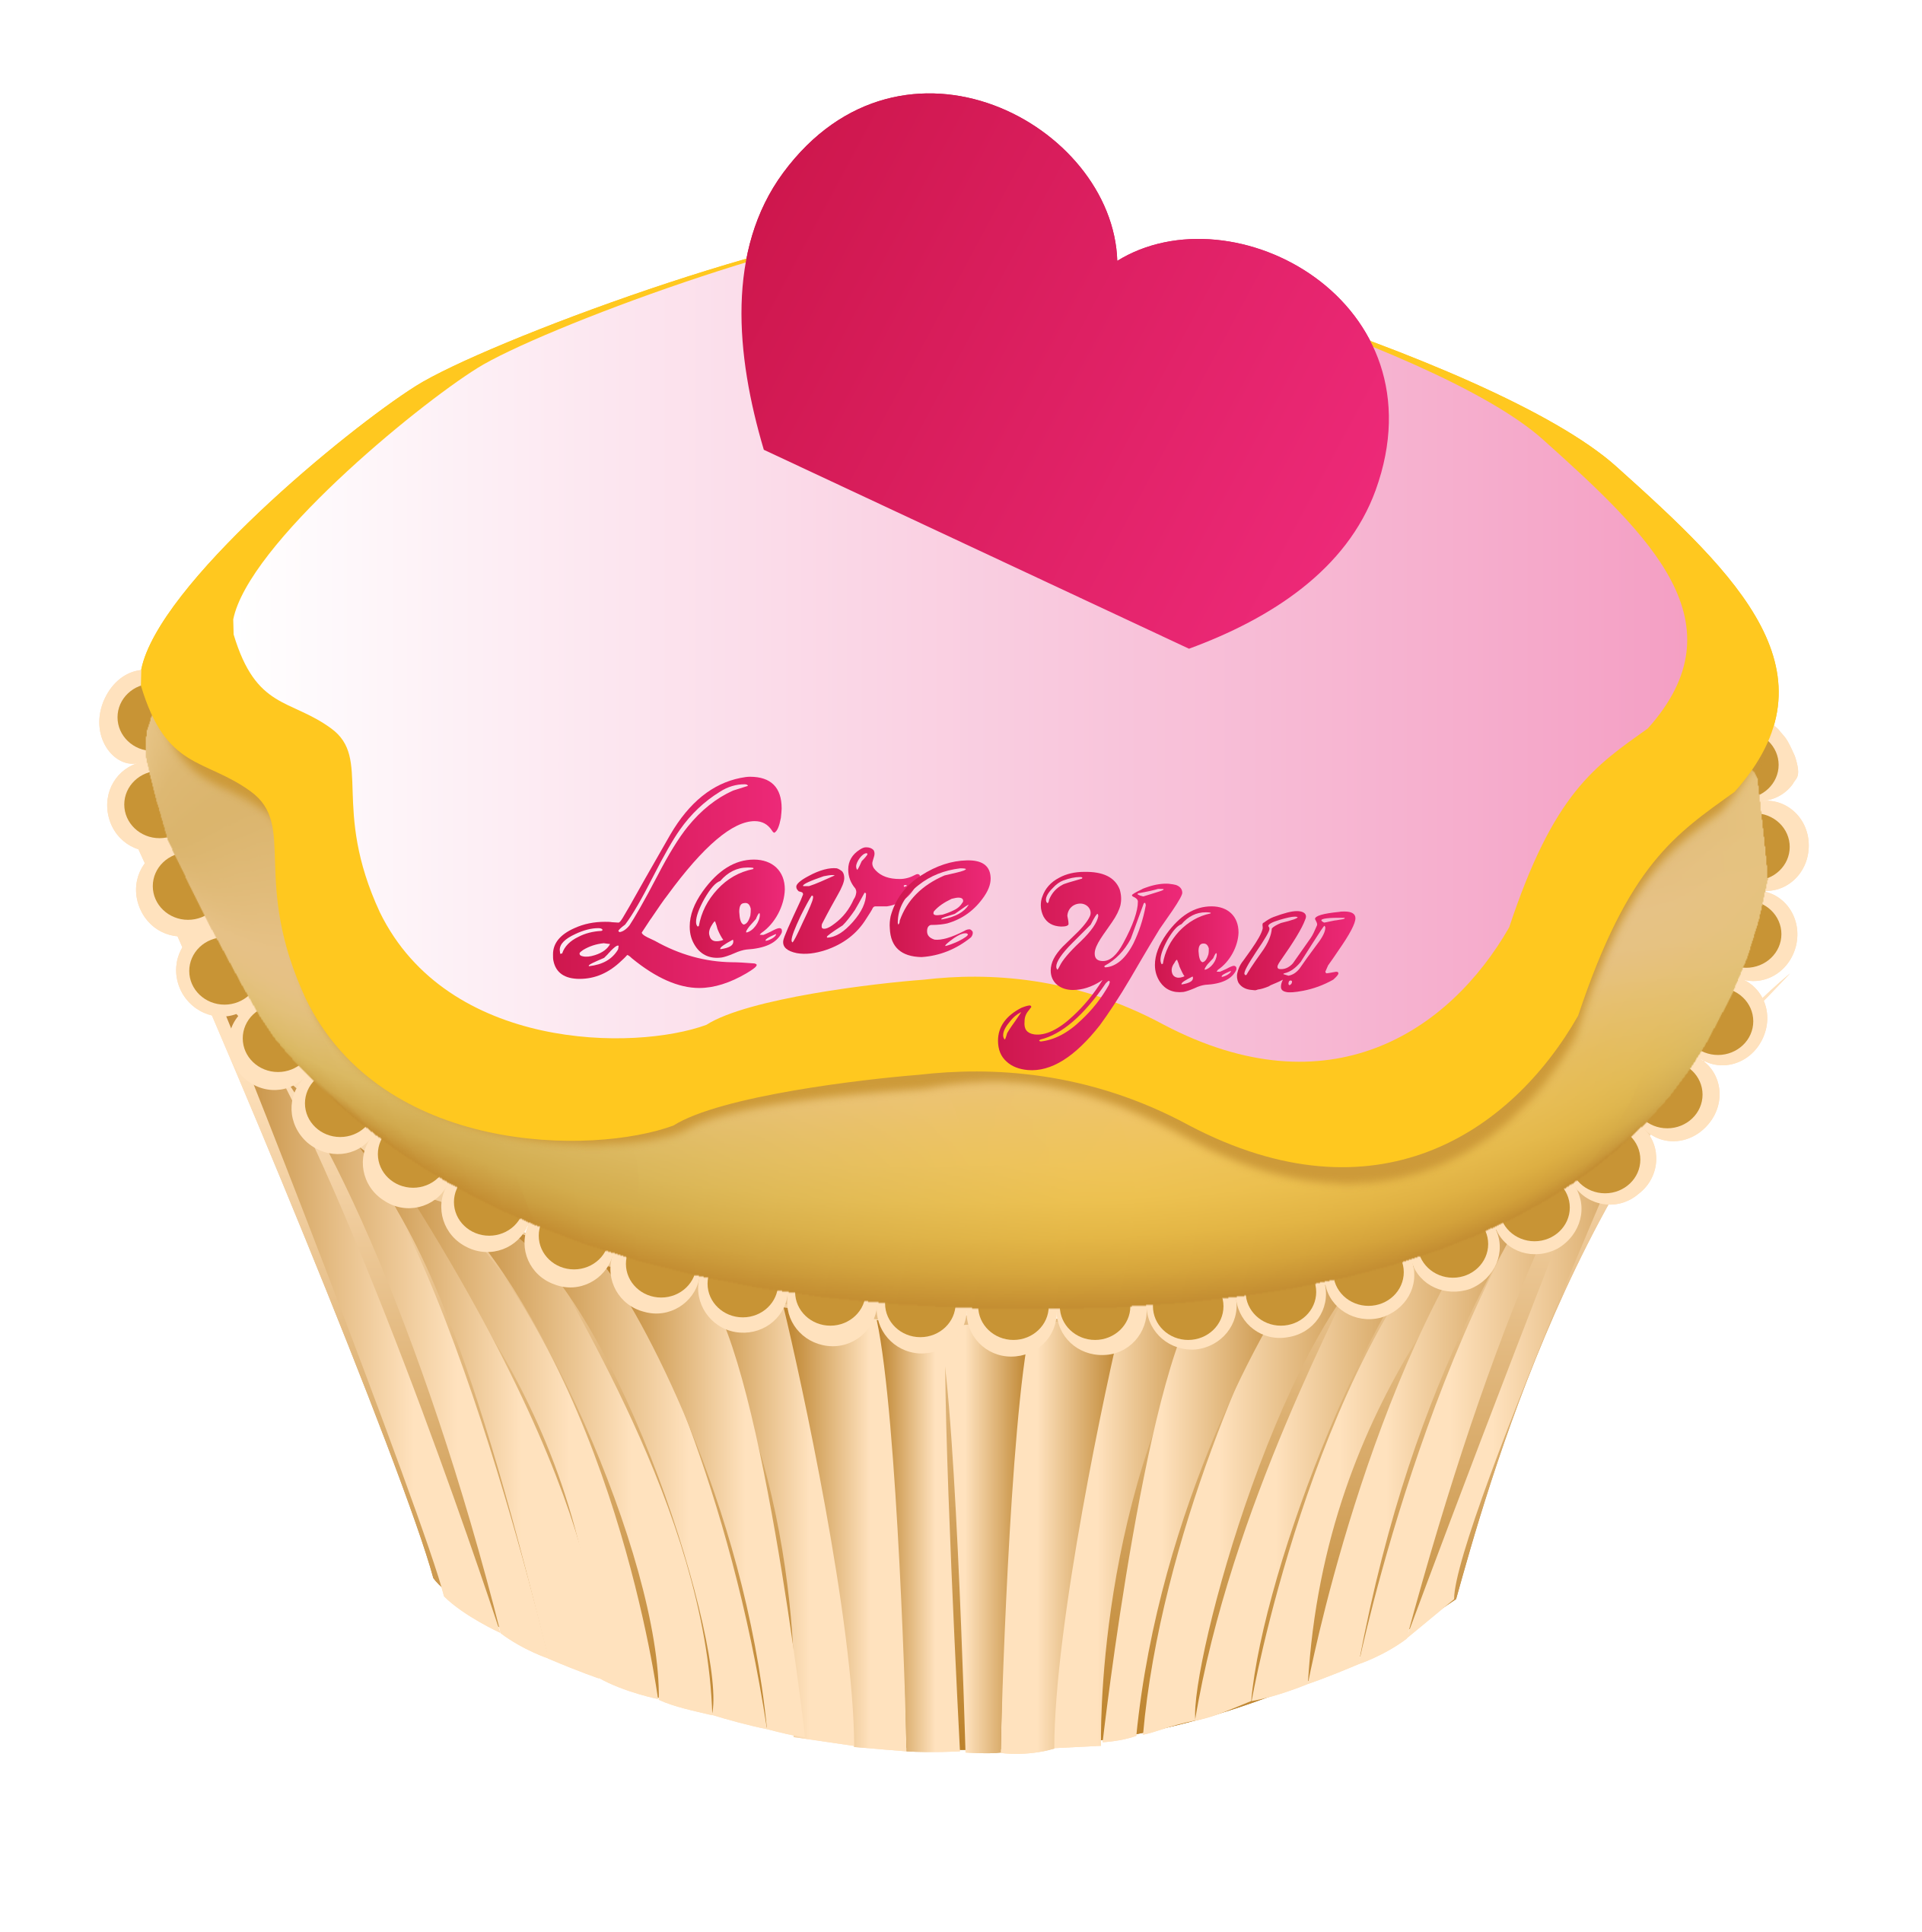 Free Love Cupcake Png With Transparent Background All images is transparent background and free download. https www vecteezy com png 1187960 love cupcake